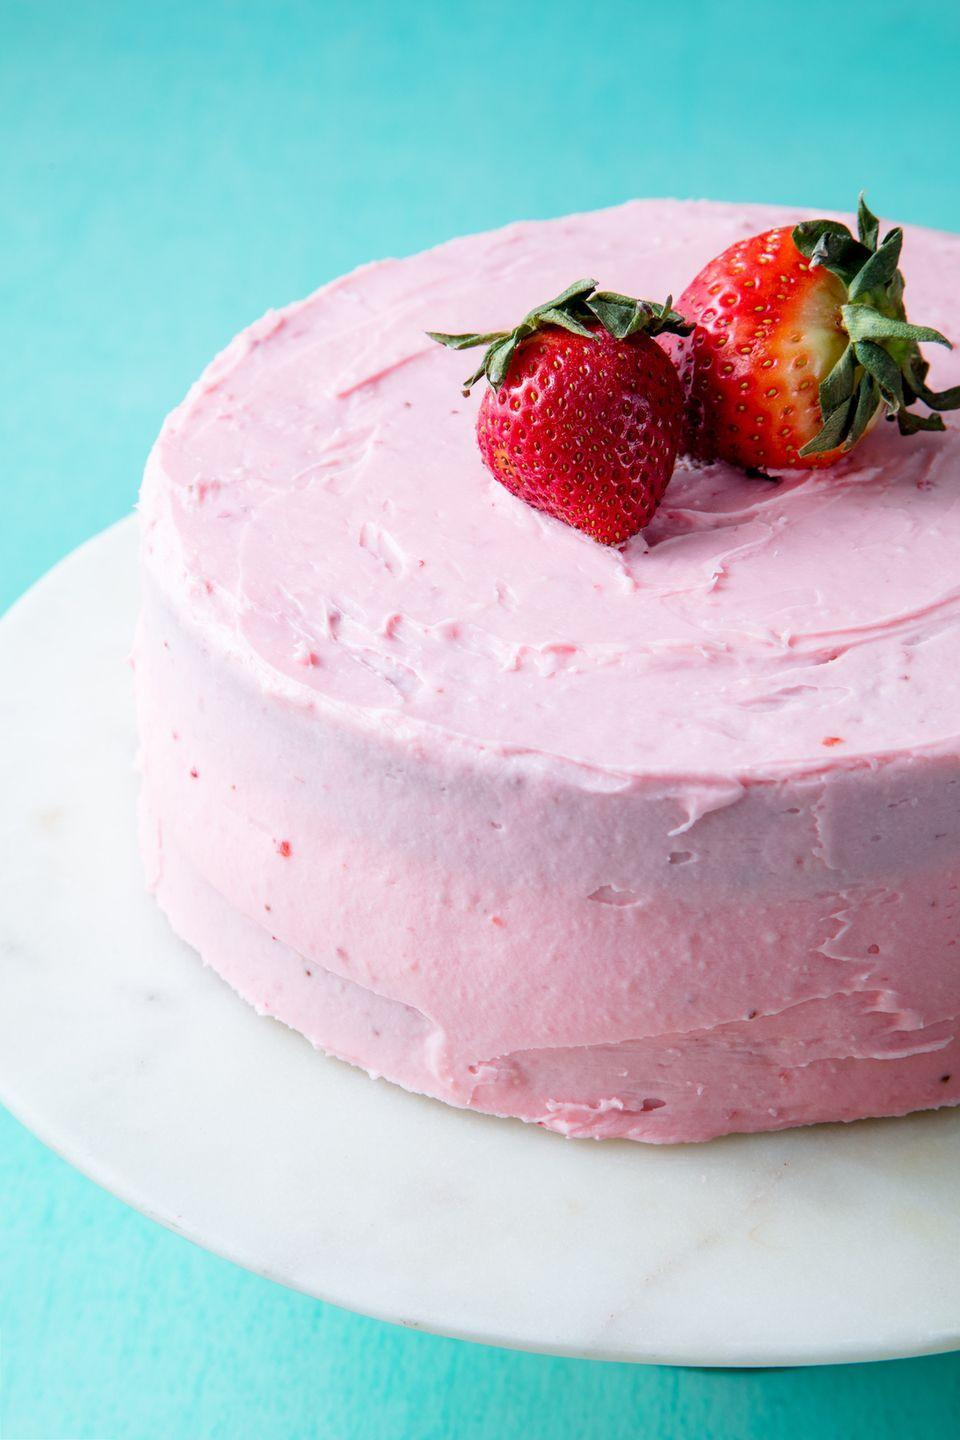 """<p>What's cuter than a pink cake?</p><p>Get the recipe from <a href=""""https://www.delish.com/cooking/recipe-ideas/a19624120/homemade-strawberry-cake-recipe/"""" rel=""""nofollow noopener"""" target=""""_blank"""" data-ylk=""""slk:Delish"""" class=""""link rapid-noclick-resp"""">Delish</a>.</p>"""